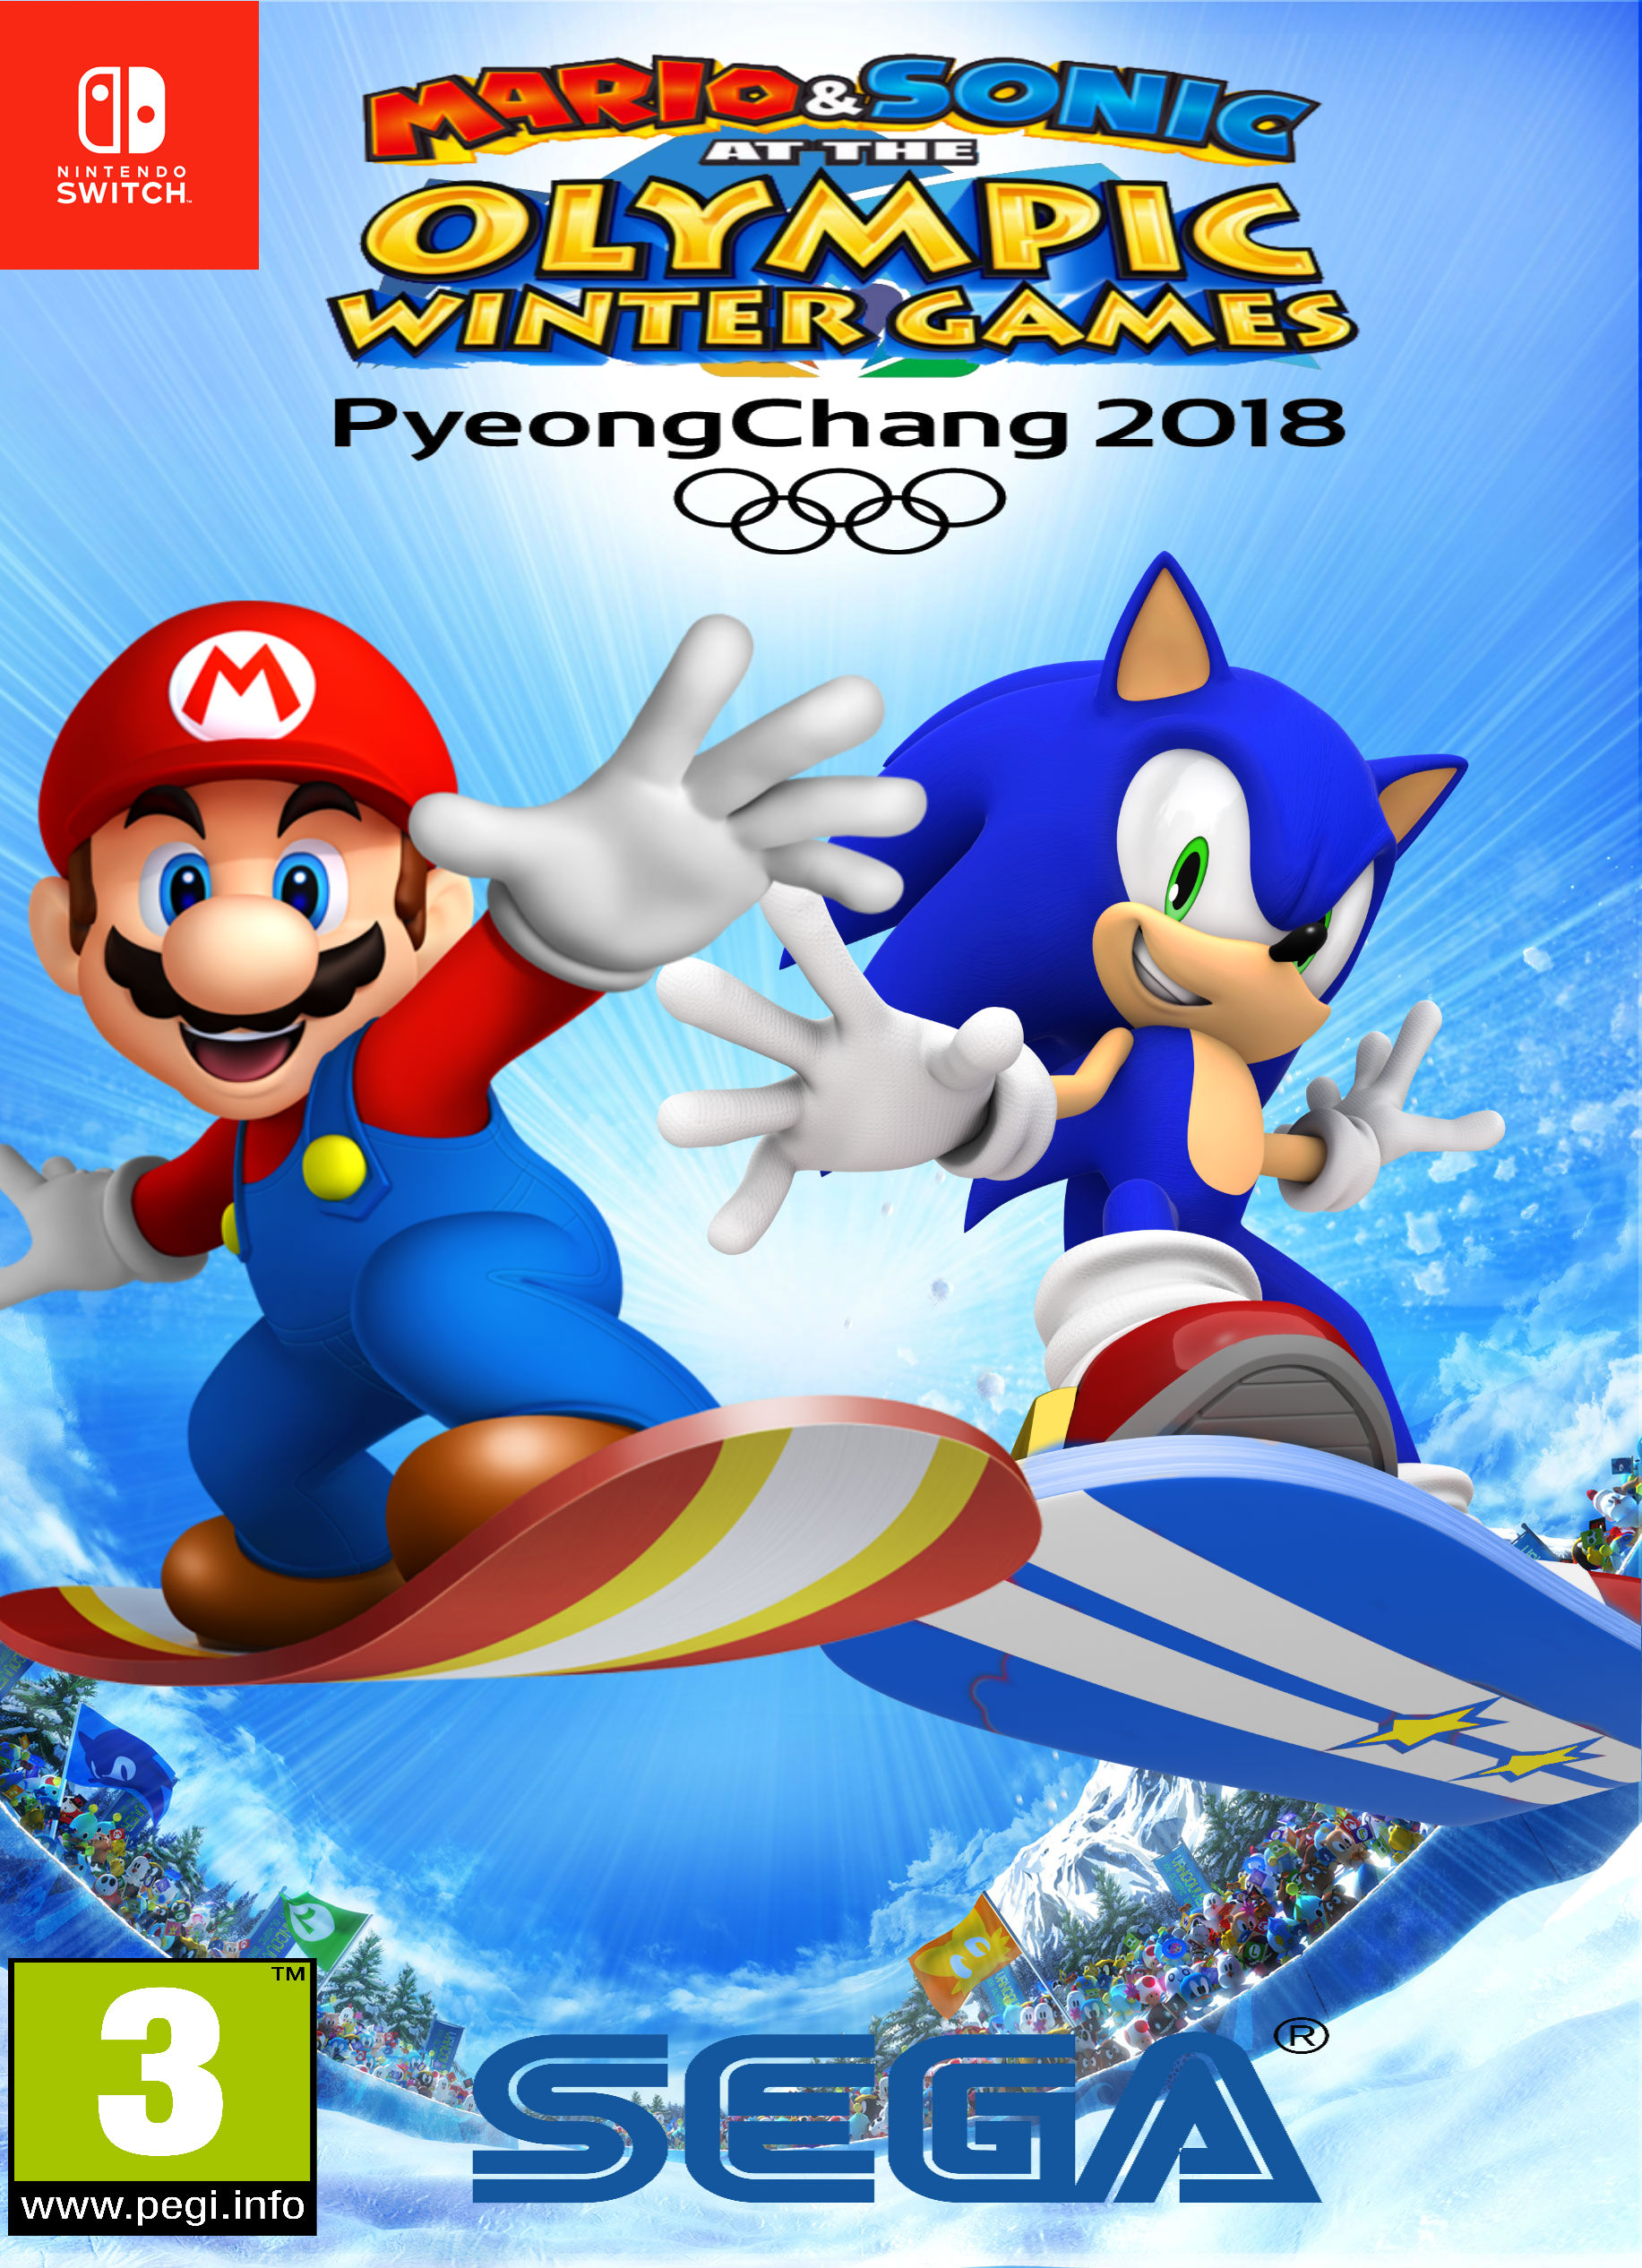 Mario & Sonic at the PyeongChang 2018 Olympic Winter Games ...